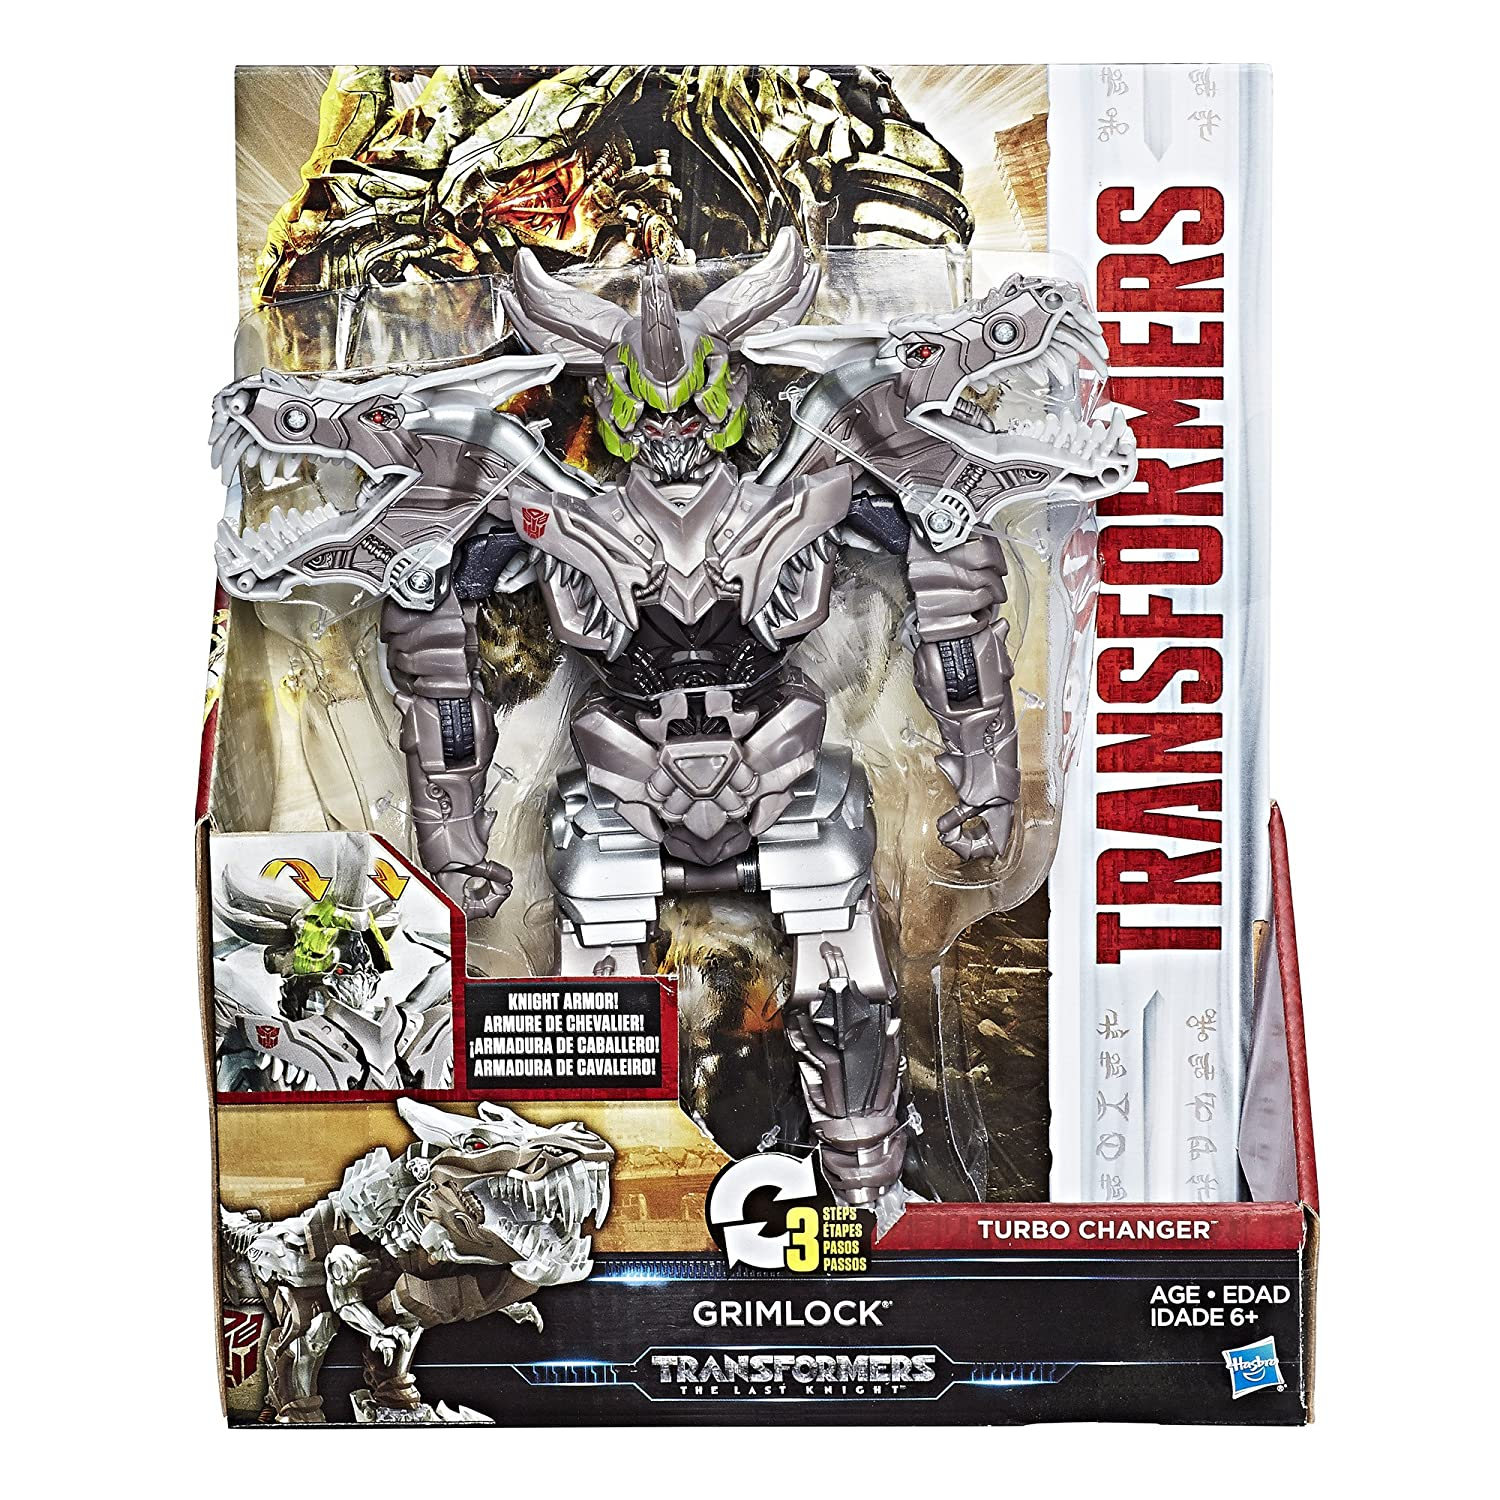 Transformers The Last Knight Armor Turbo Changer Grimlock Rex Manufacturing Transformer Wiring Diagram Toys Games